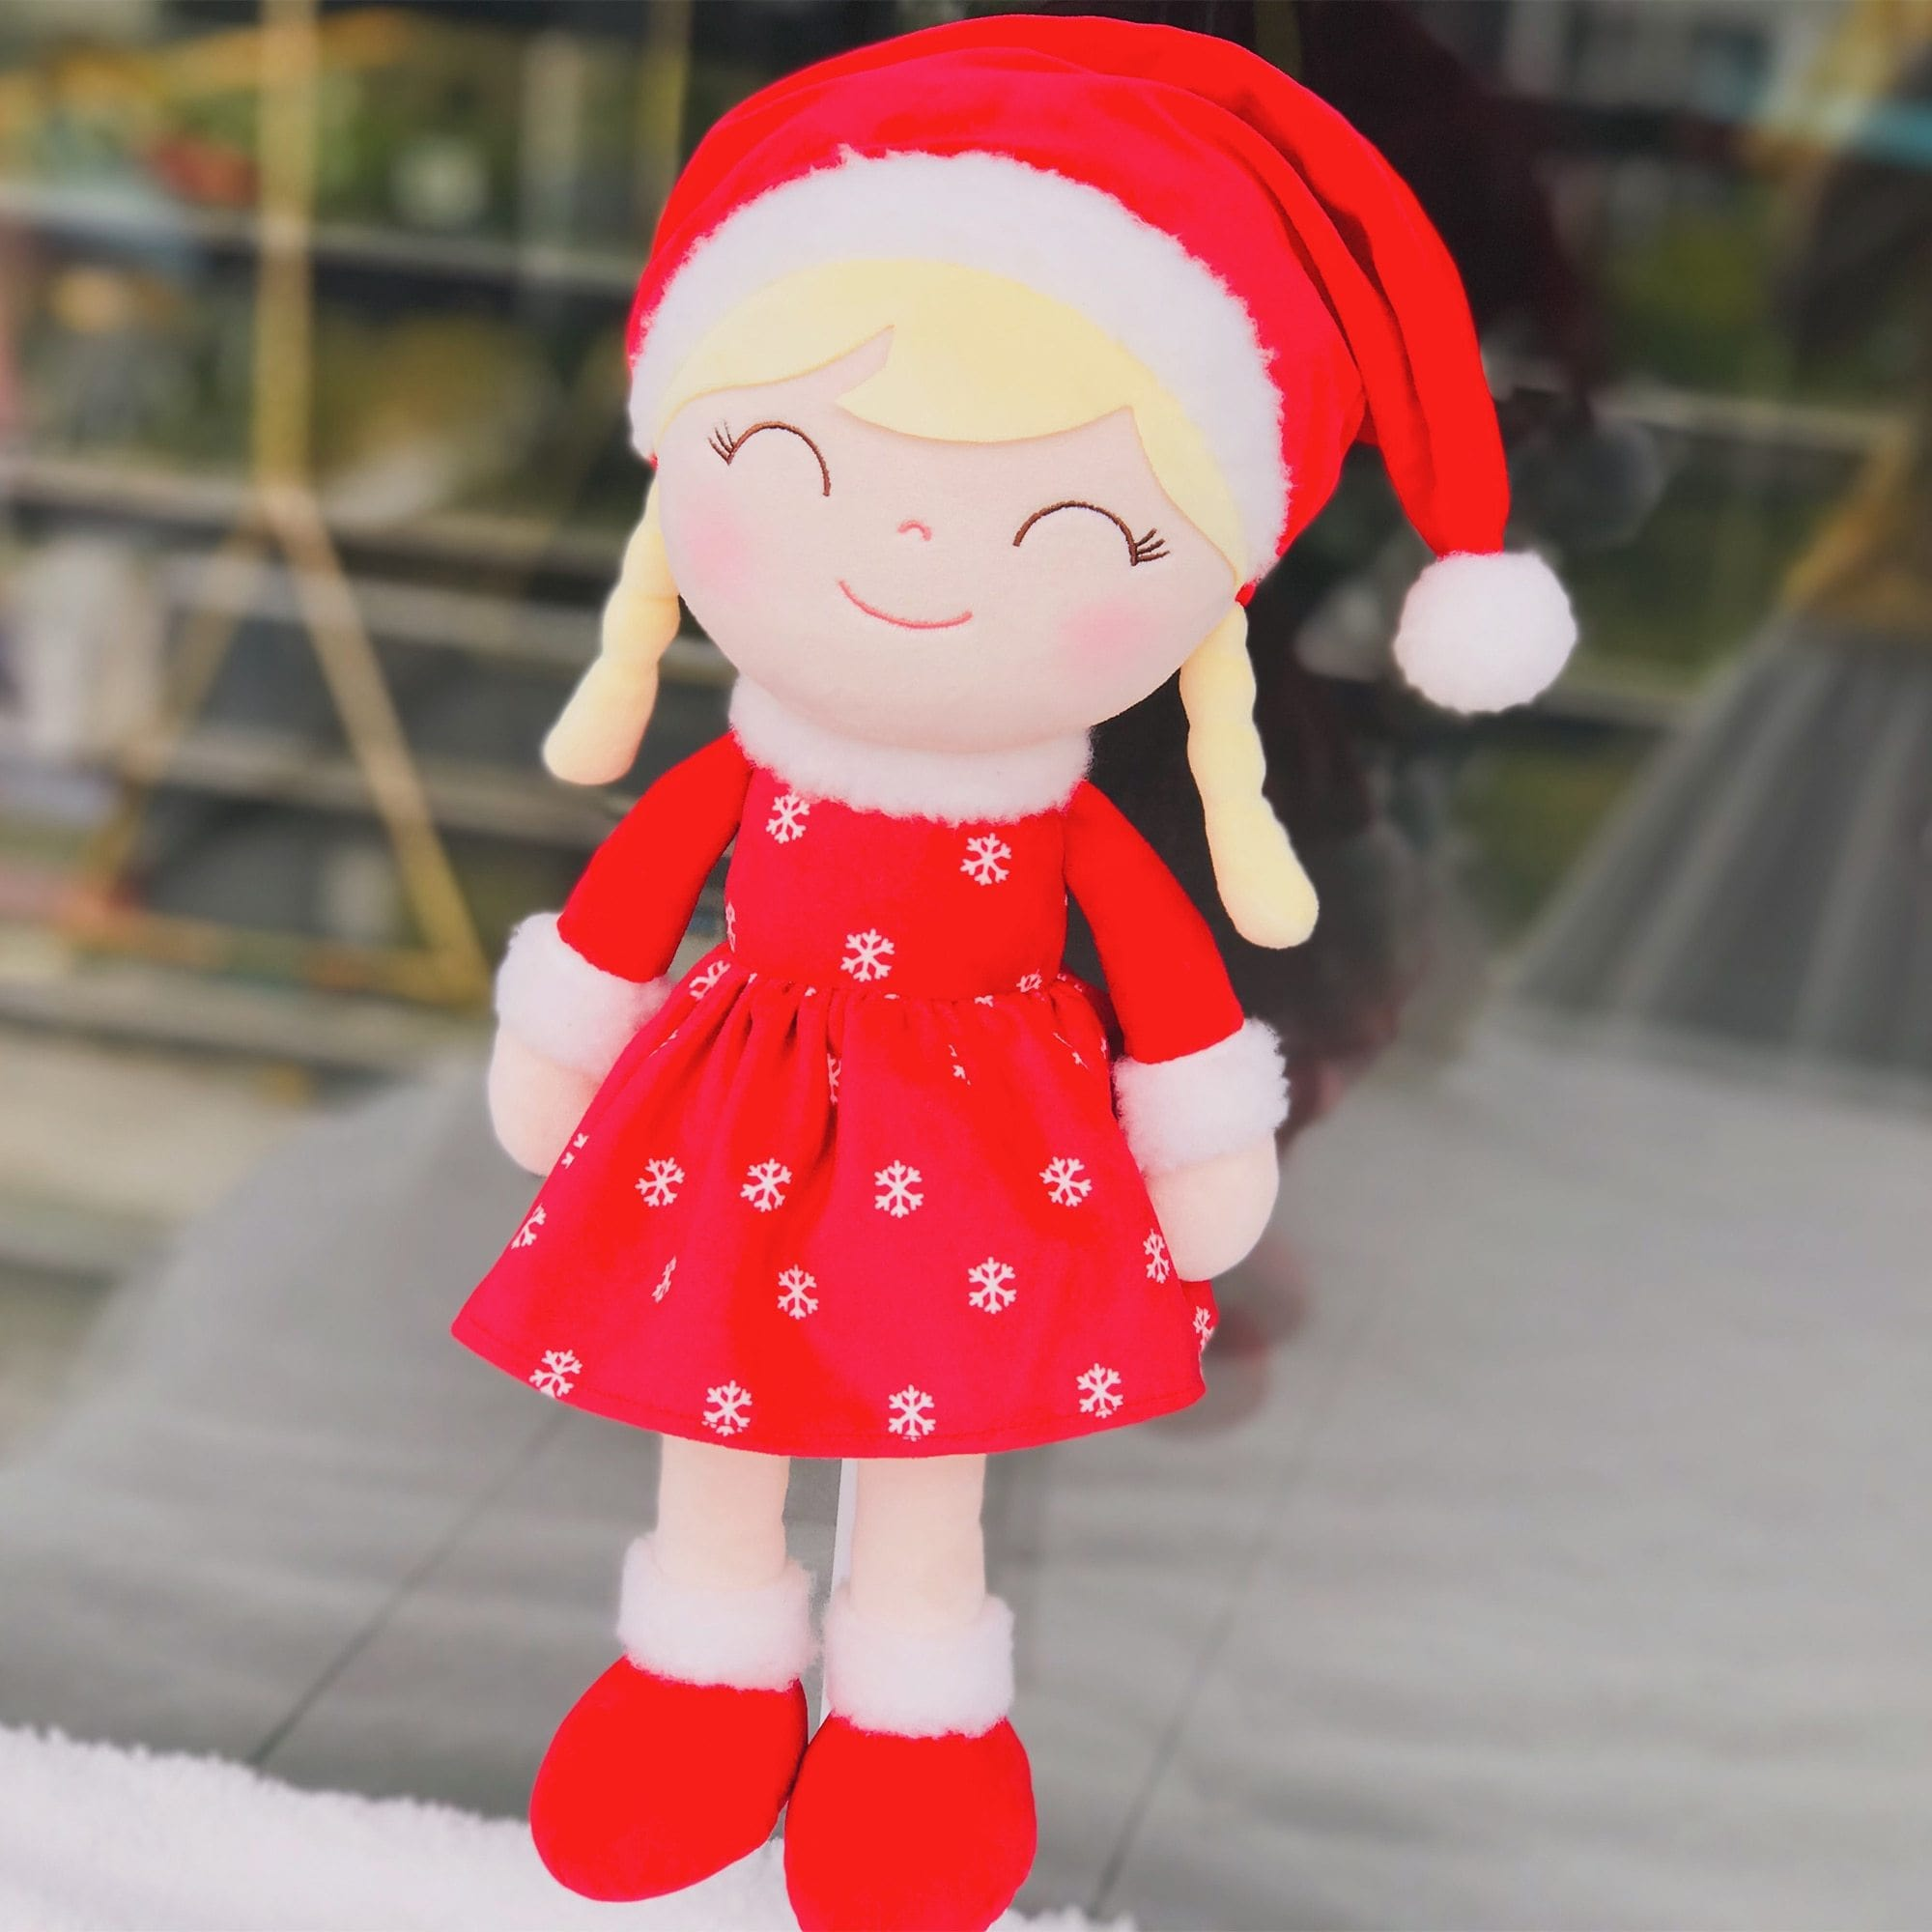 Gloveleya Christmas Dolls